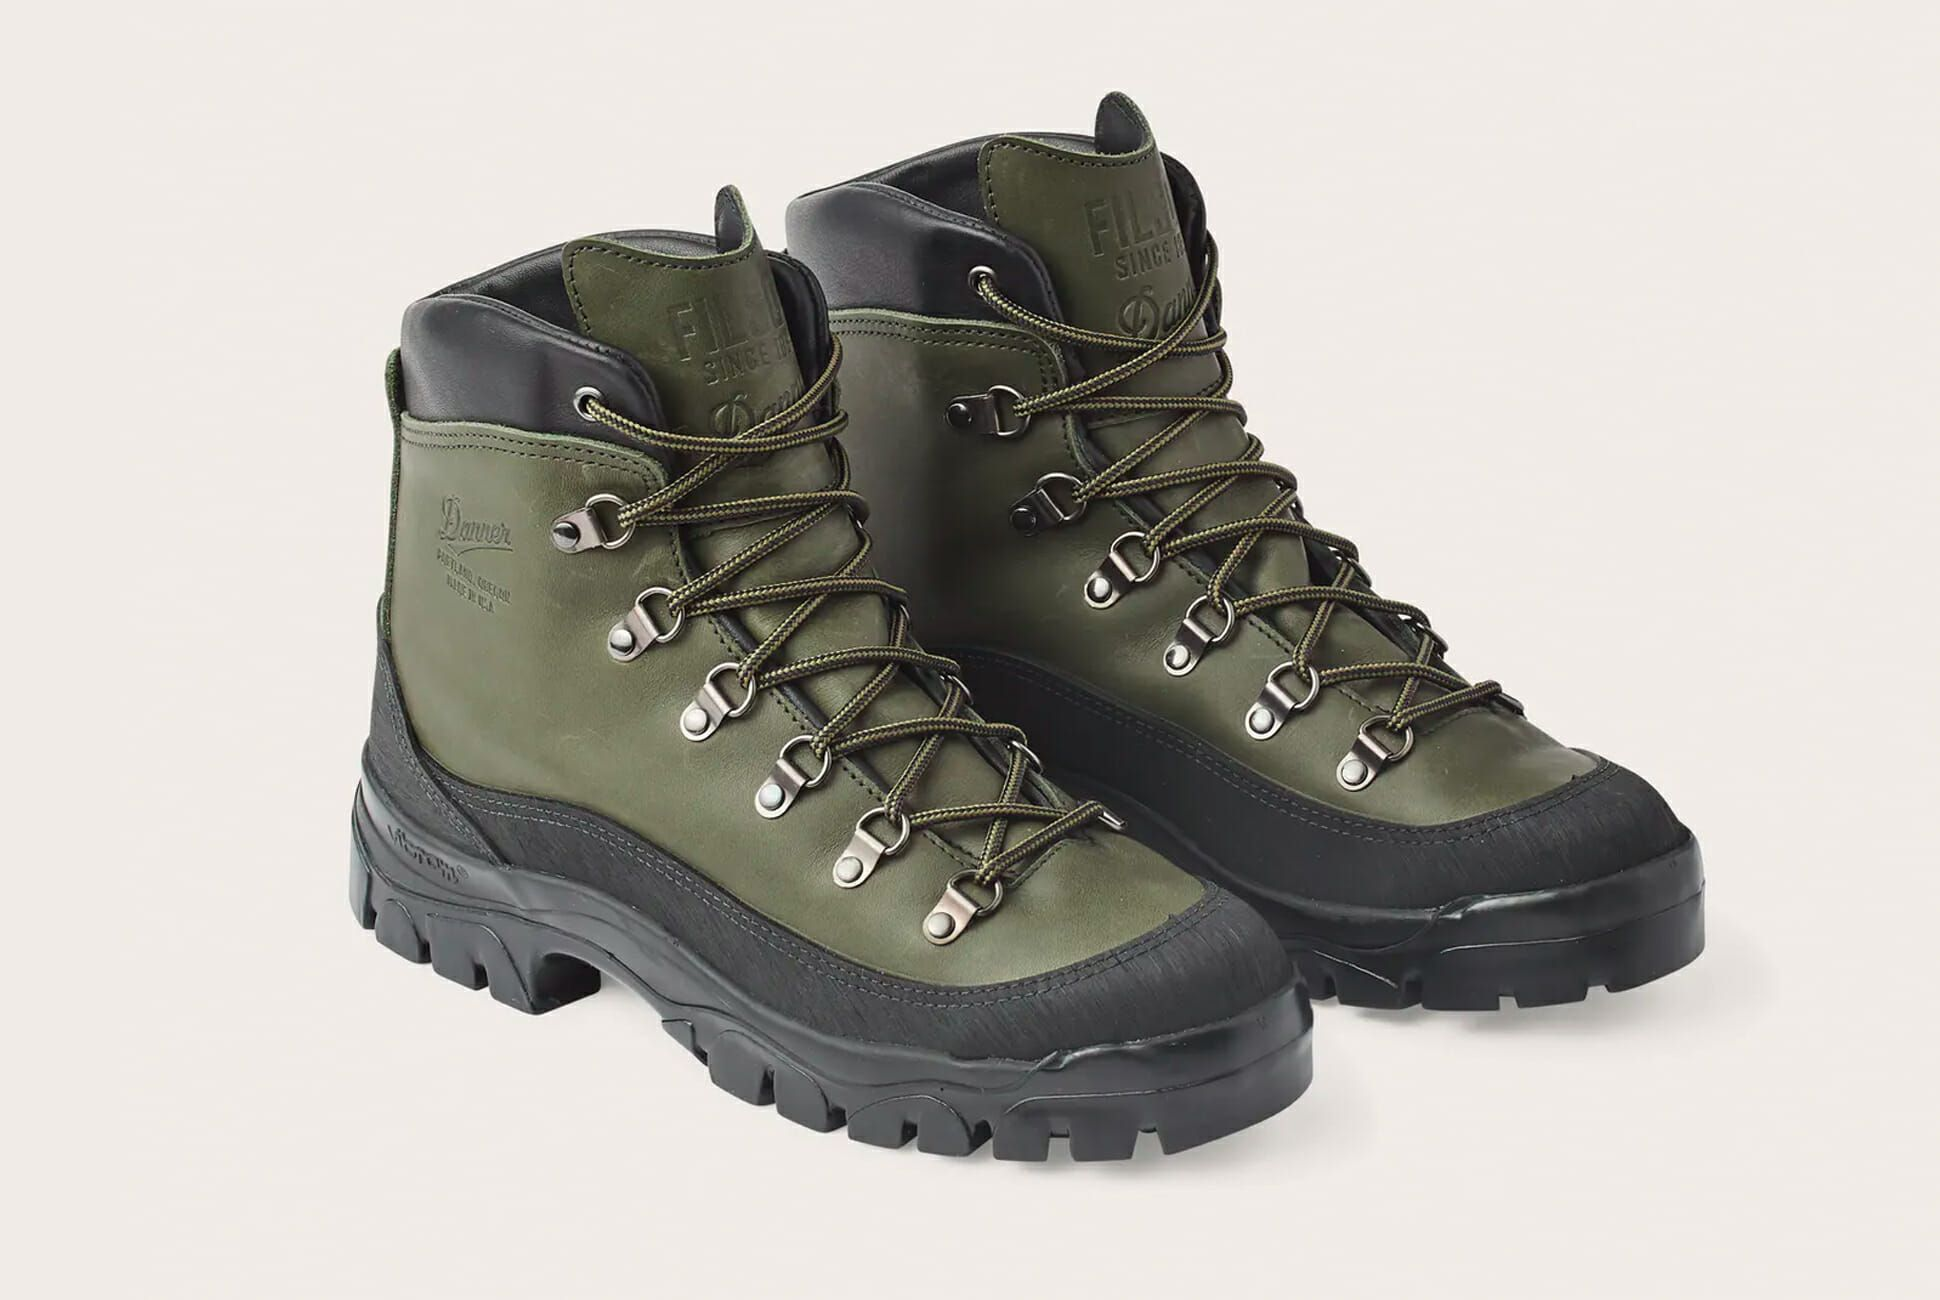 Military-Inspired Hiking Boot